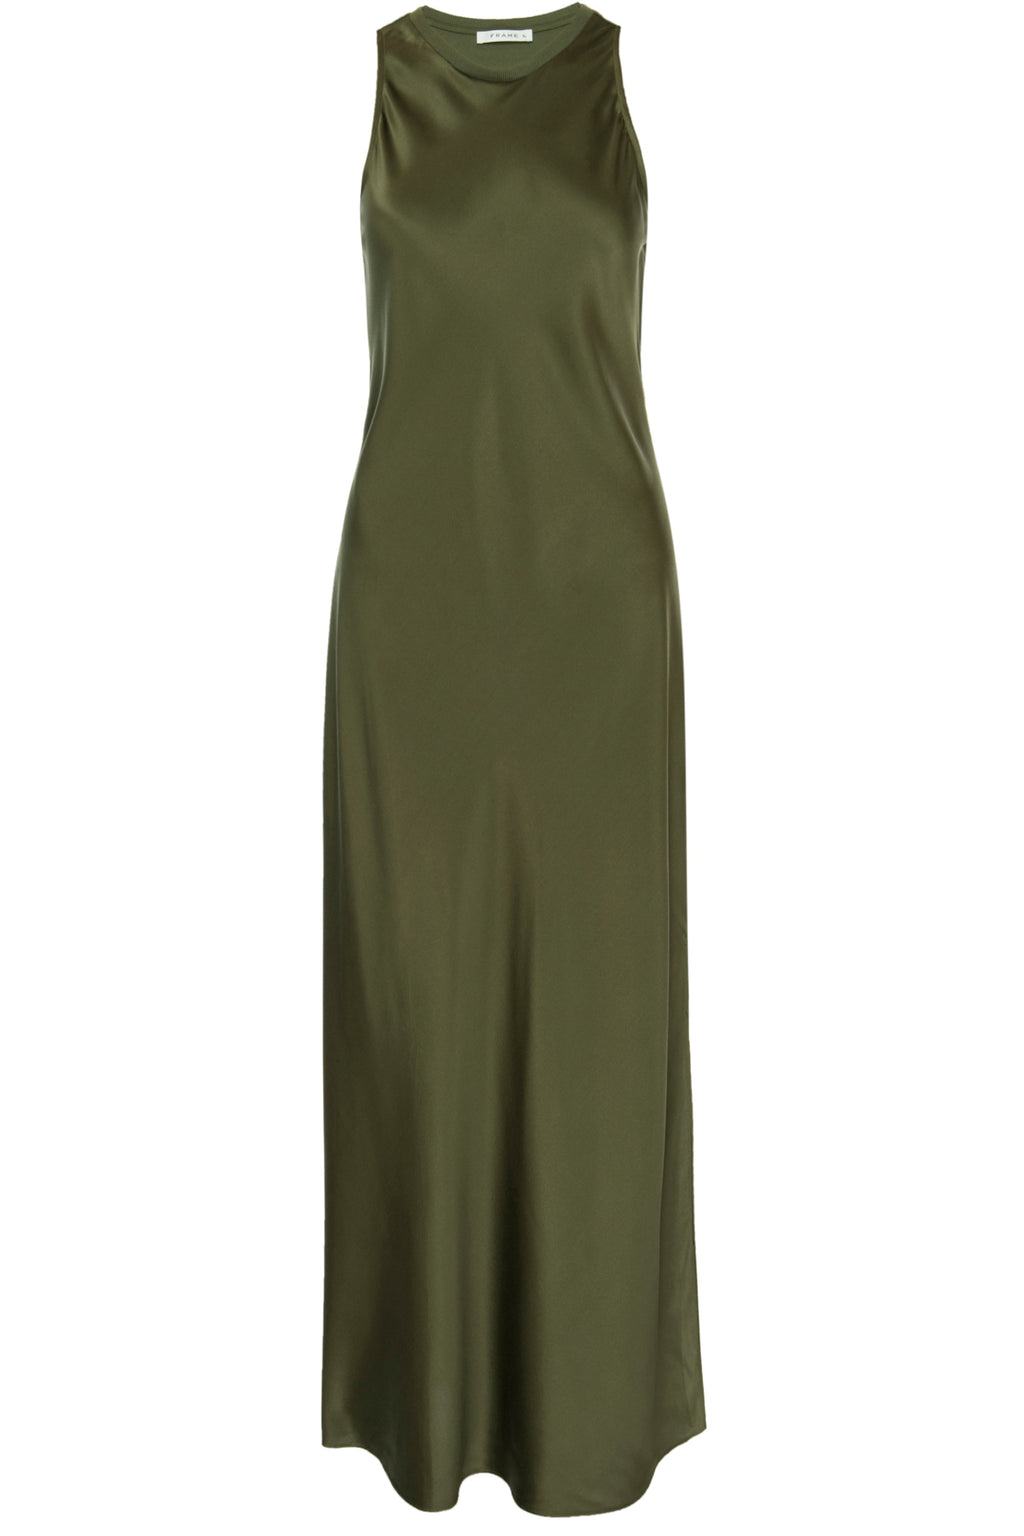 Frame Bias Maxi Dress In Military Green